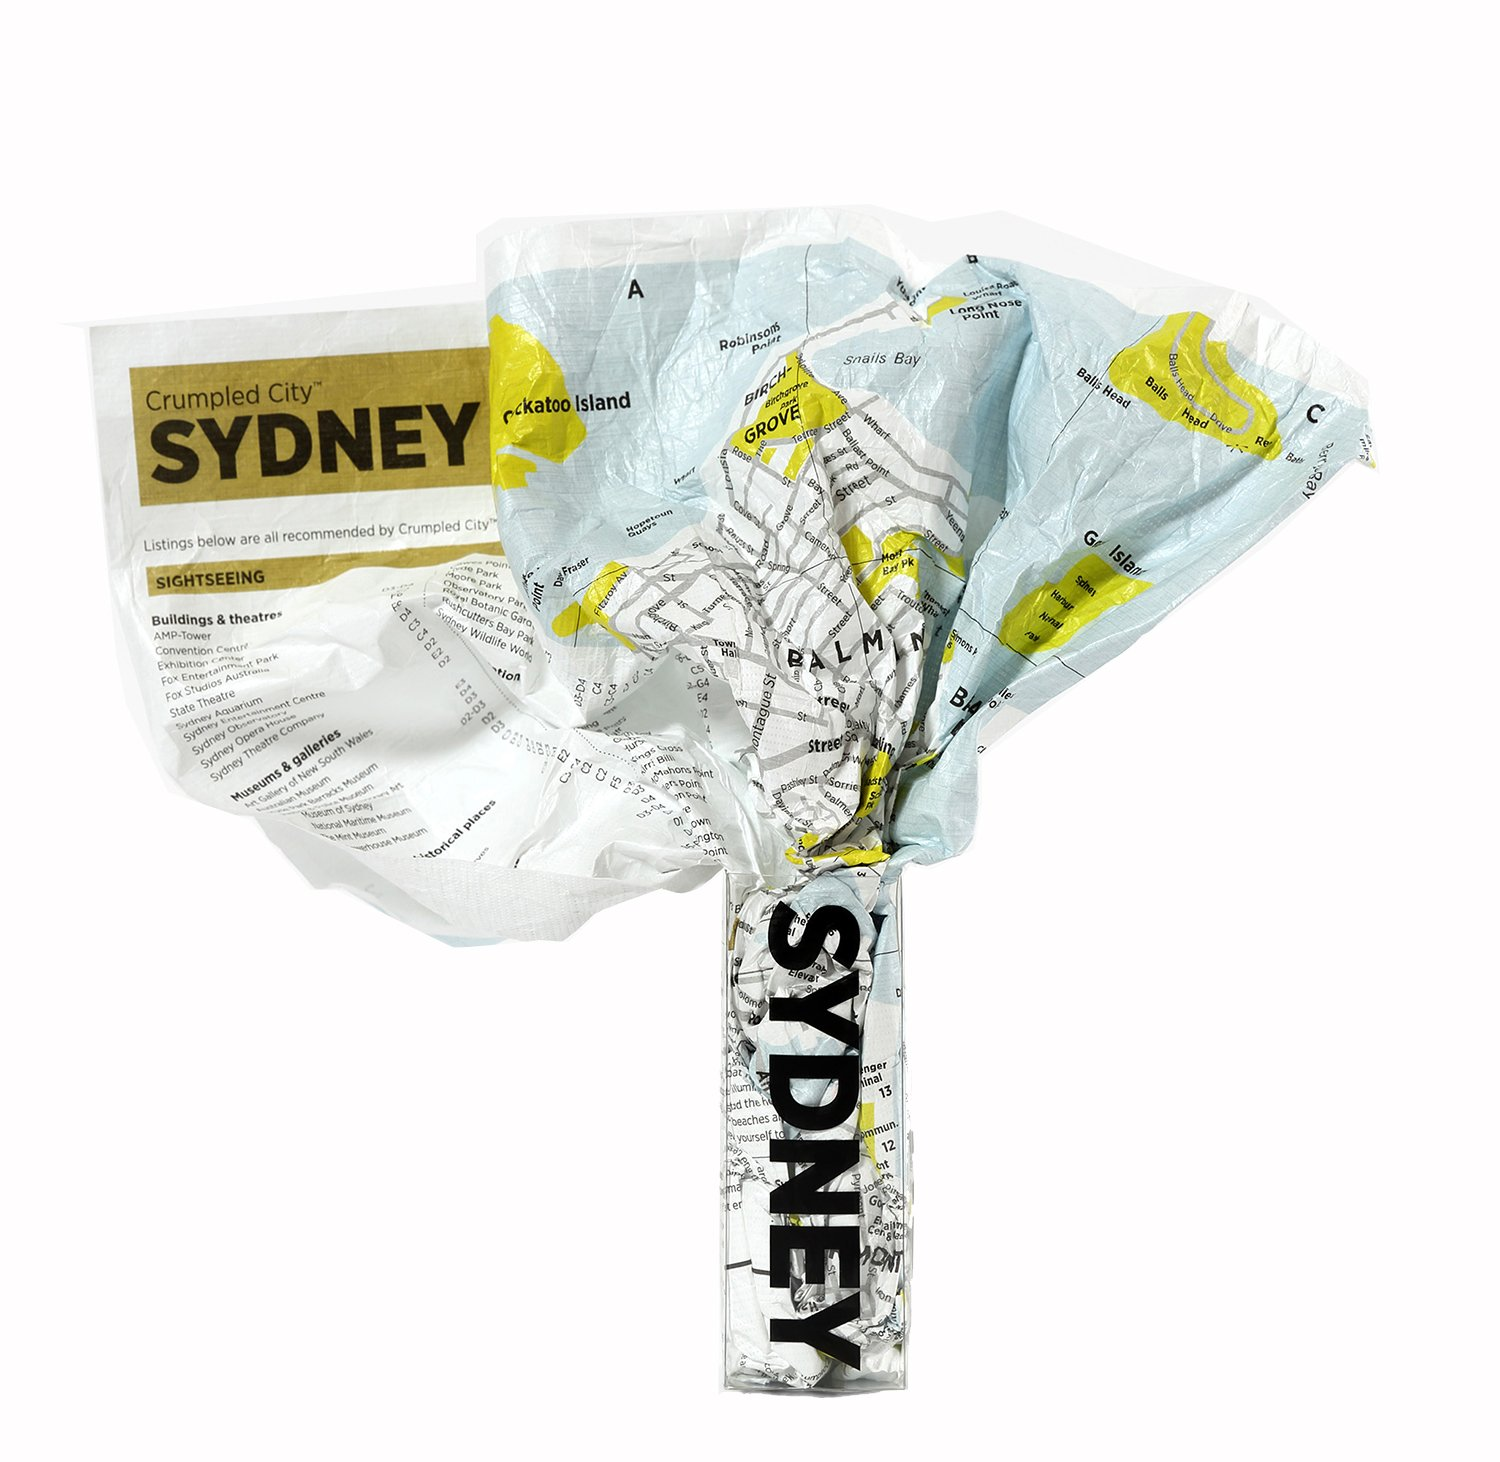 Crumpled city map. Sydney. Ediz. multilingue Crumpled City Maps Palomar (Firenze) 9788890573248 Australia